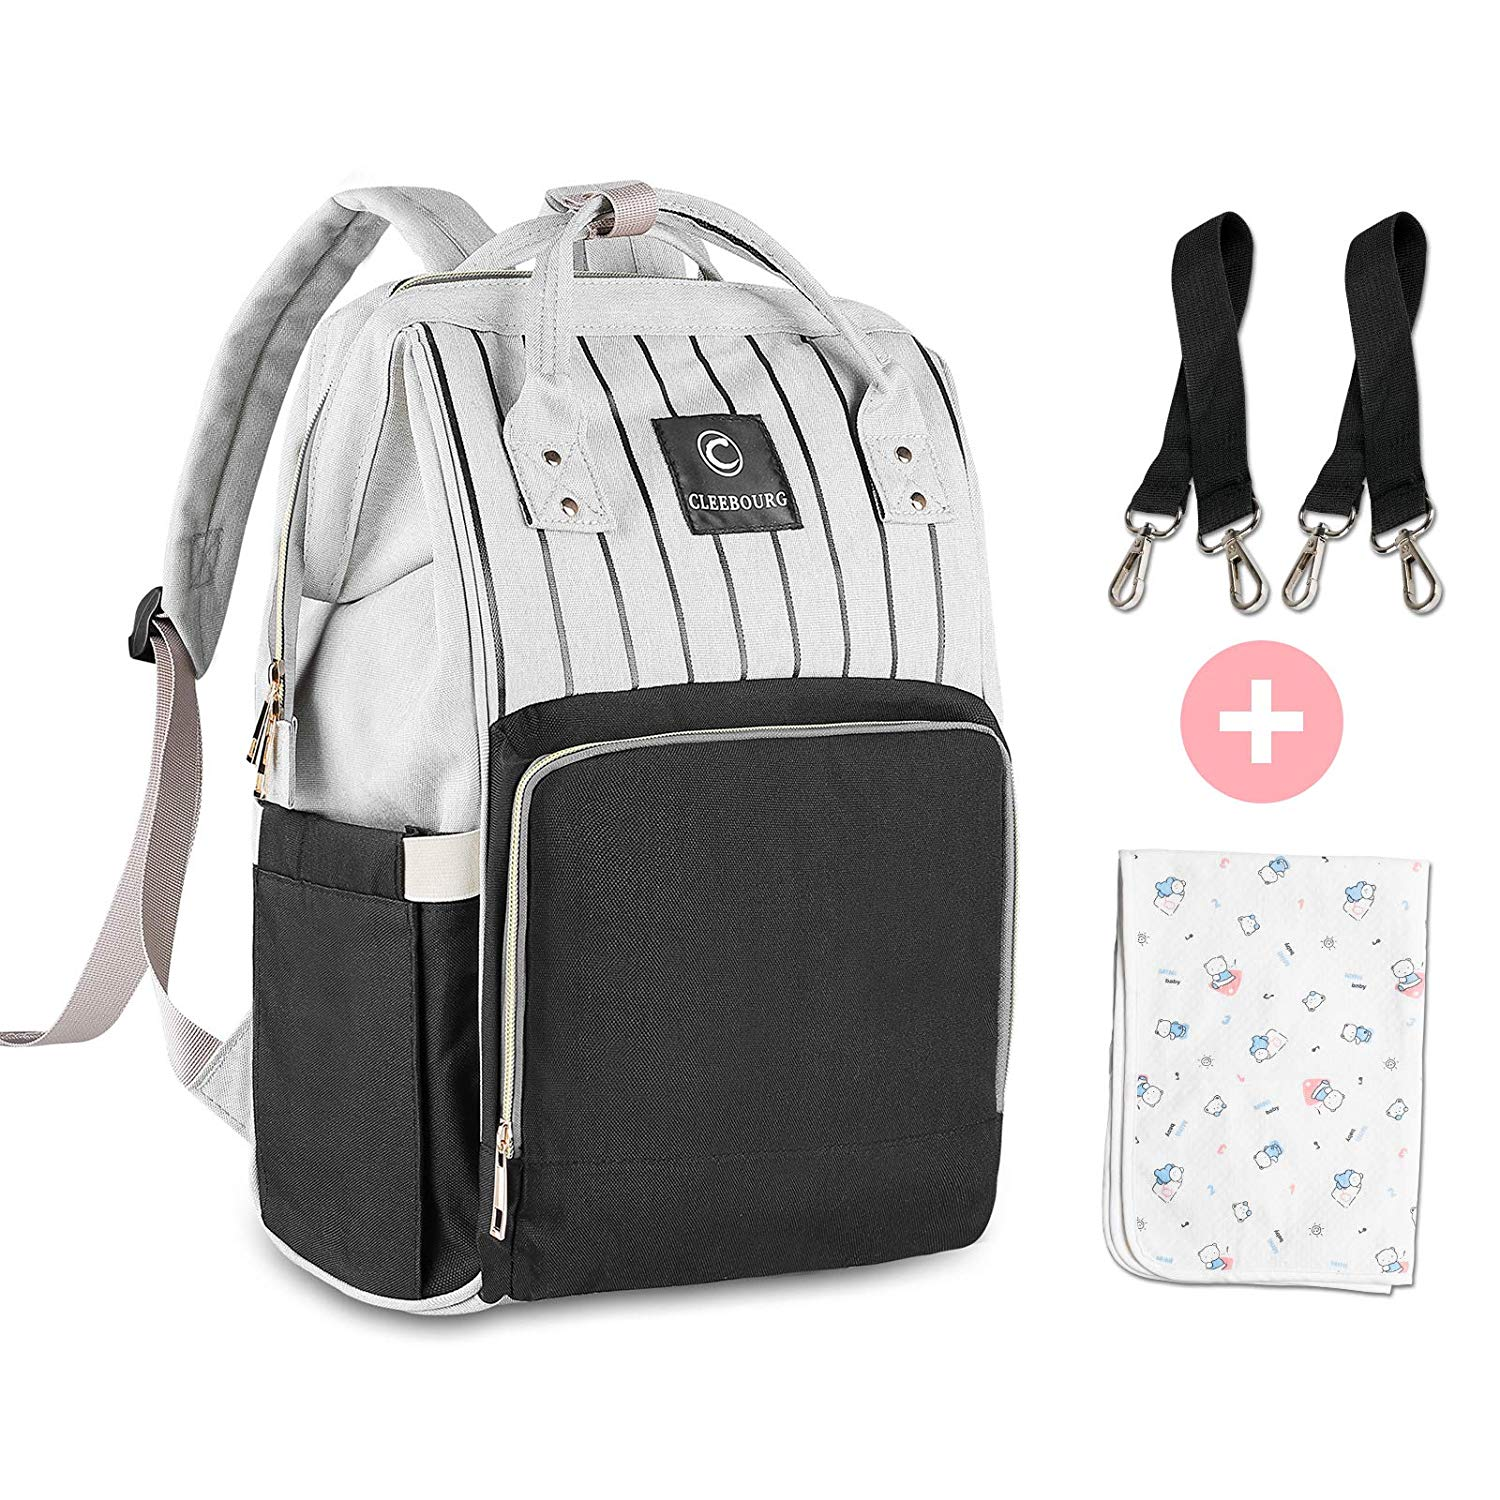 CLEEBOURG Nappy Bag Backpack, Diaper Bag Baby Changing Bag